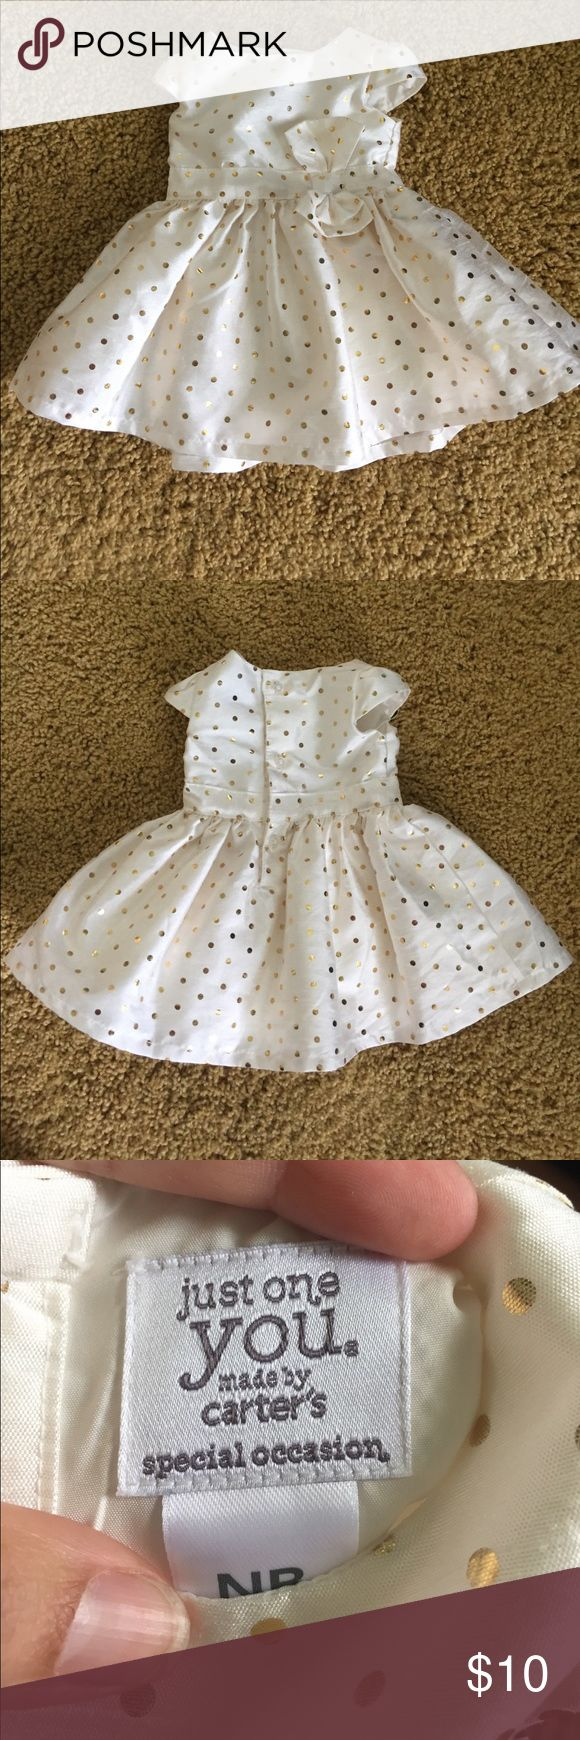 Newborn Party Dress in cream & gold Like new! Worn once. Smoke/pet free home. Special occasion dresses in NB are so hard to find! Just one You by Carter's brand. Off white with gold polka-dots Carter's Dresses Formal